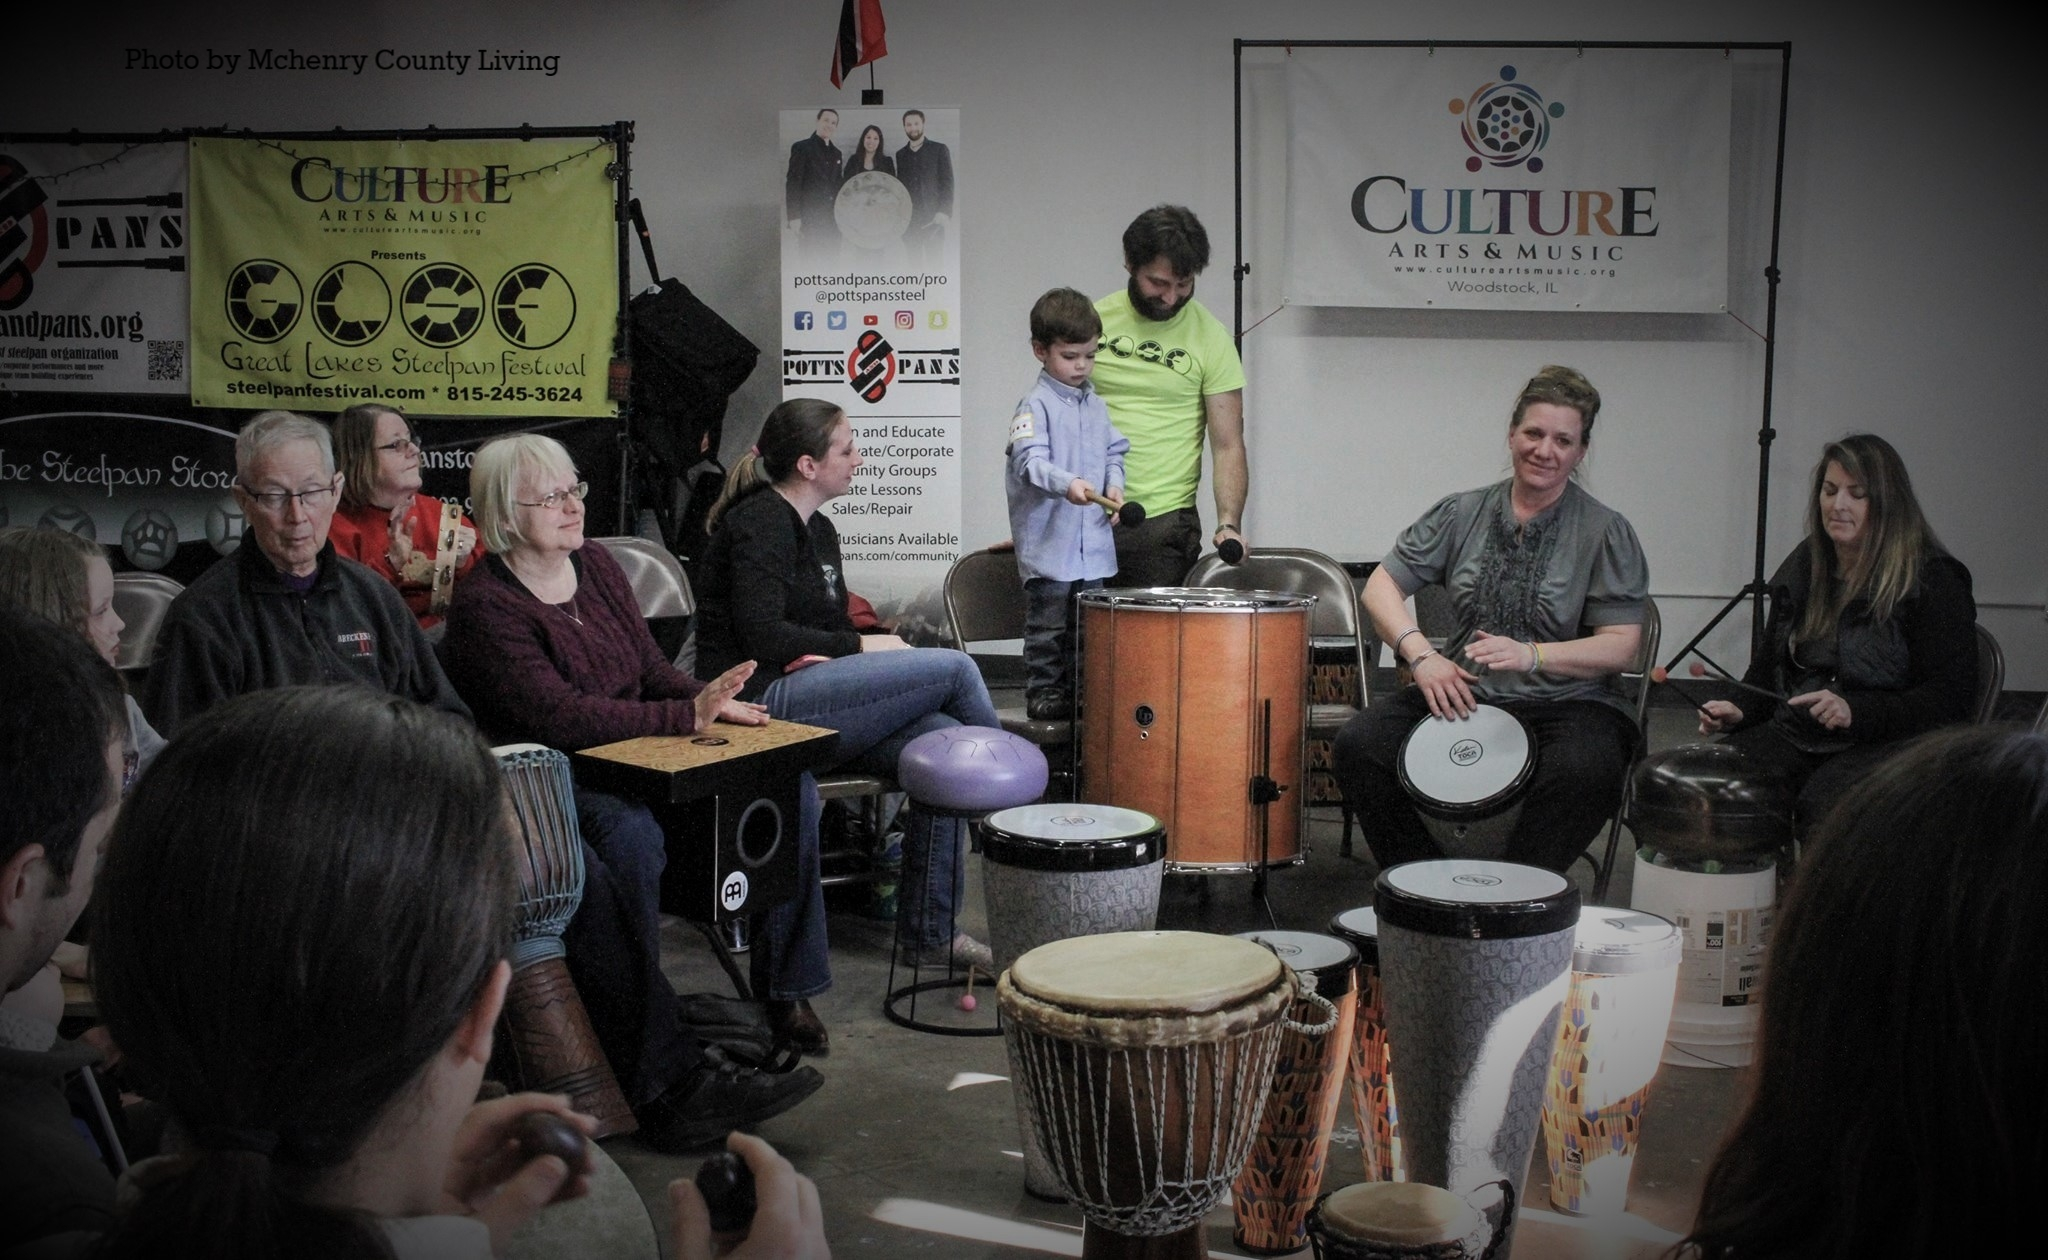 Drumming for Community - Bethany Stiltner will be facilitating at CAM - as available at Culture Arts and Music, Woodstock, IL.1st Sundays of the Months 3 p.m.PLEASE CHECK CULTURE ARTS AND MUSIC EVENT CALENDAR TO CONFIRM THIS EVENT IS TAKING PLACE BEFORE YOU GO.September 1st: NO drum circle due to Labor Day Holiday weekend events.Thanks for your patience, and hope to see you when we drum together next.